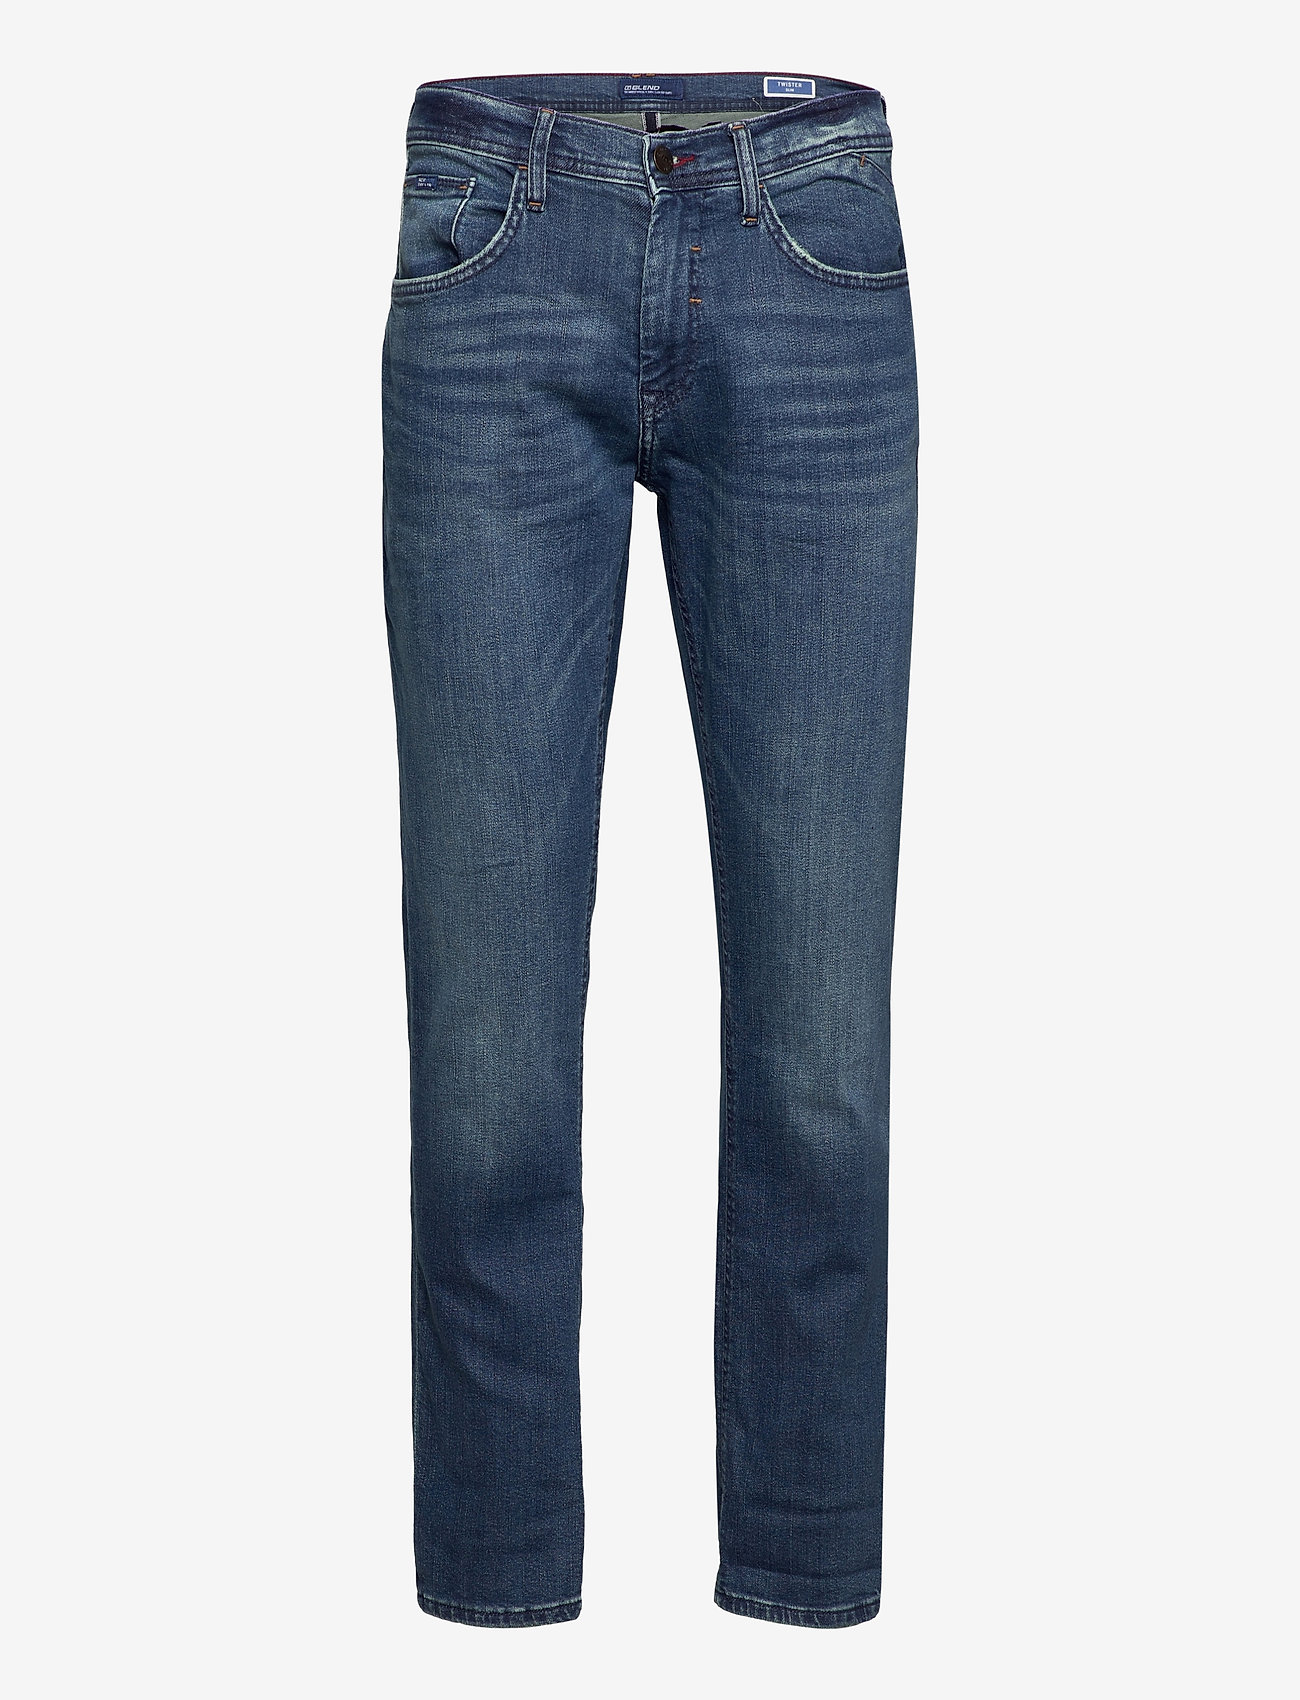 Blend Jeans - Clean - Jeans DENIM MIDDLE BLUE - Menn Klær